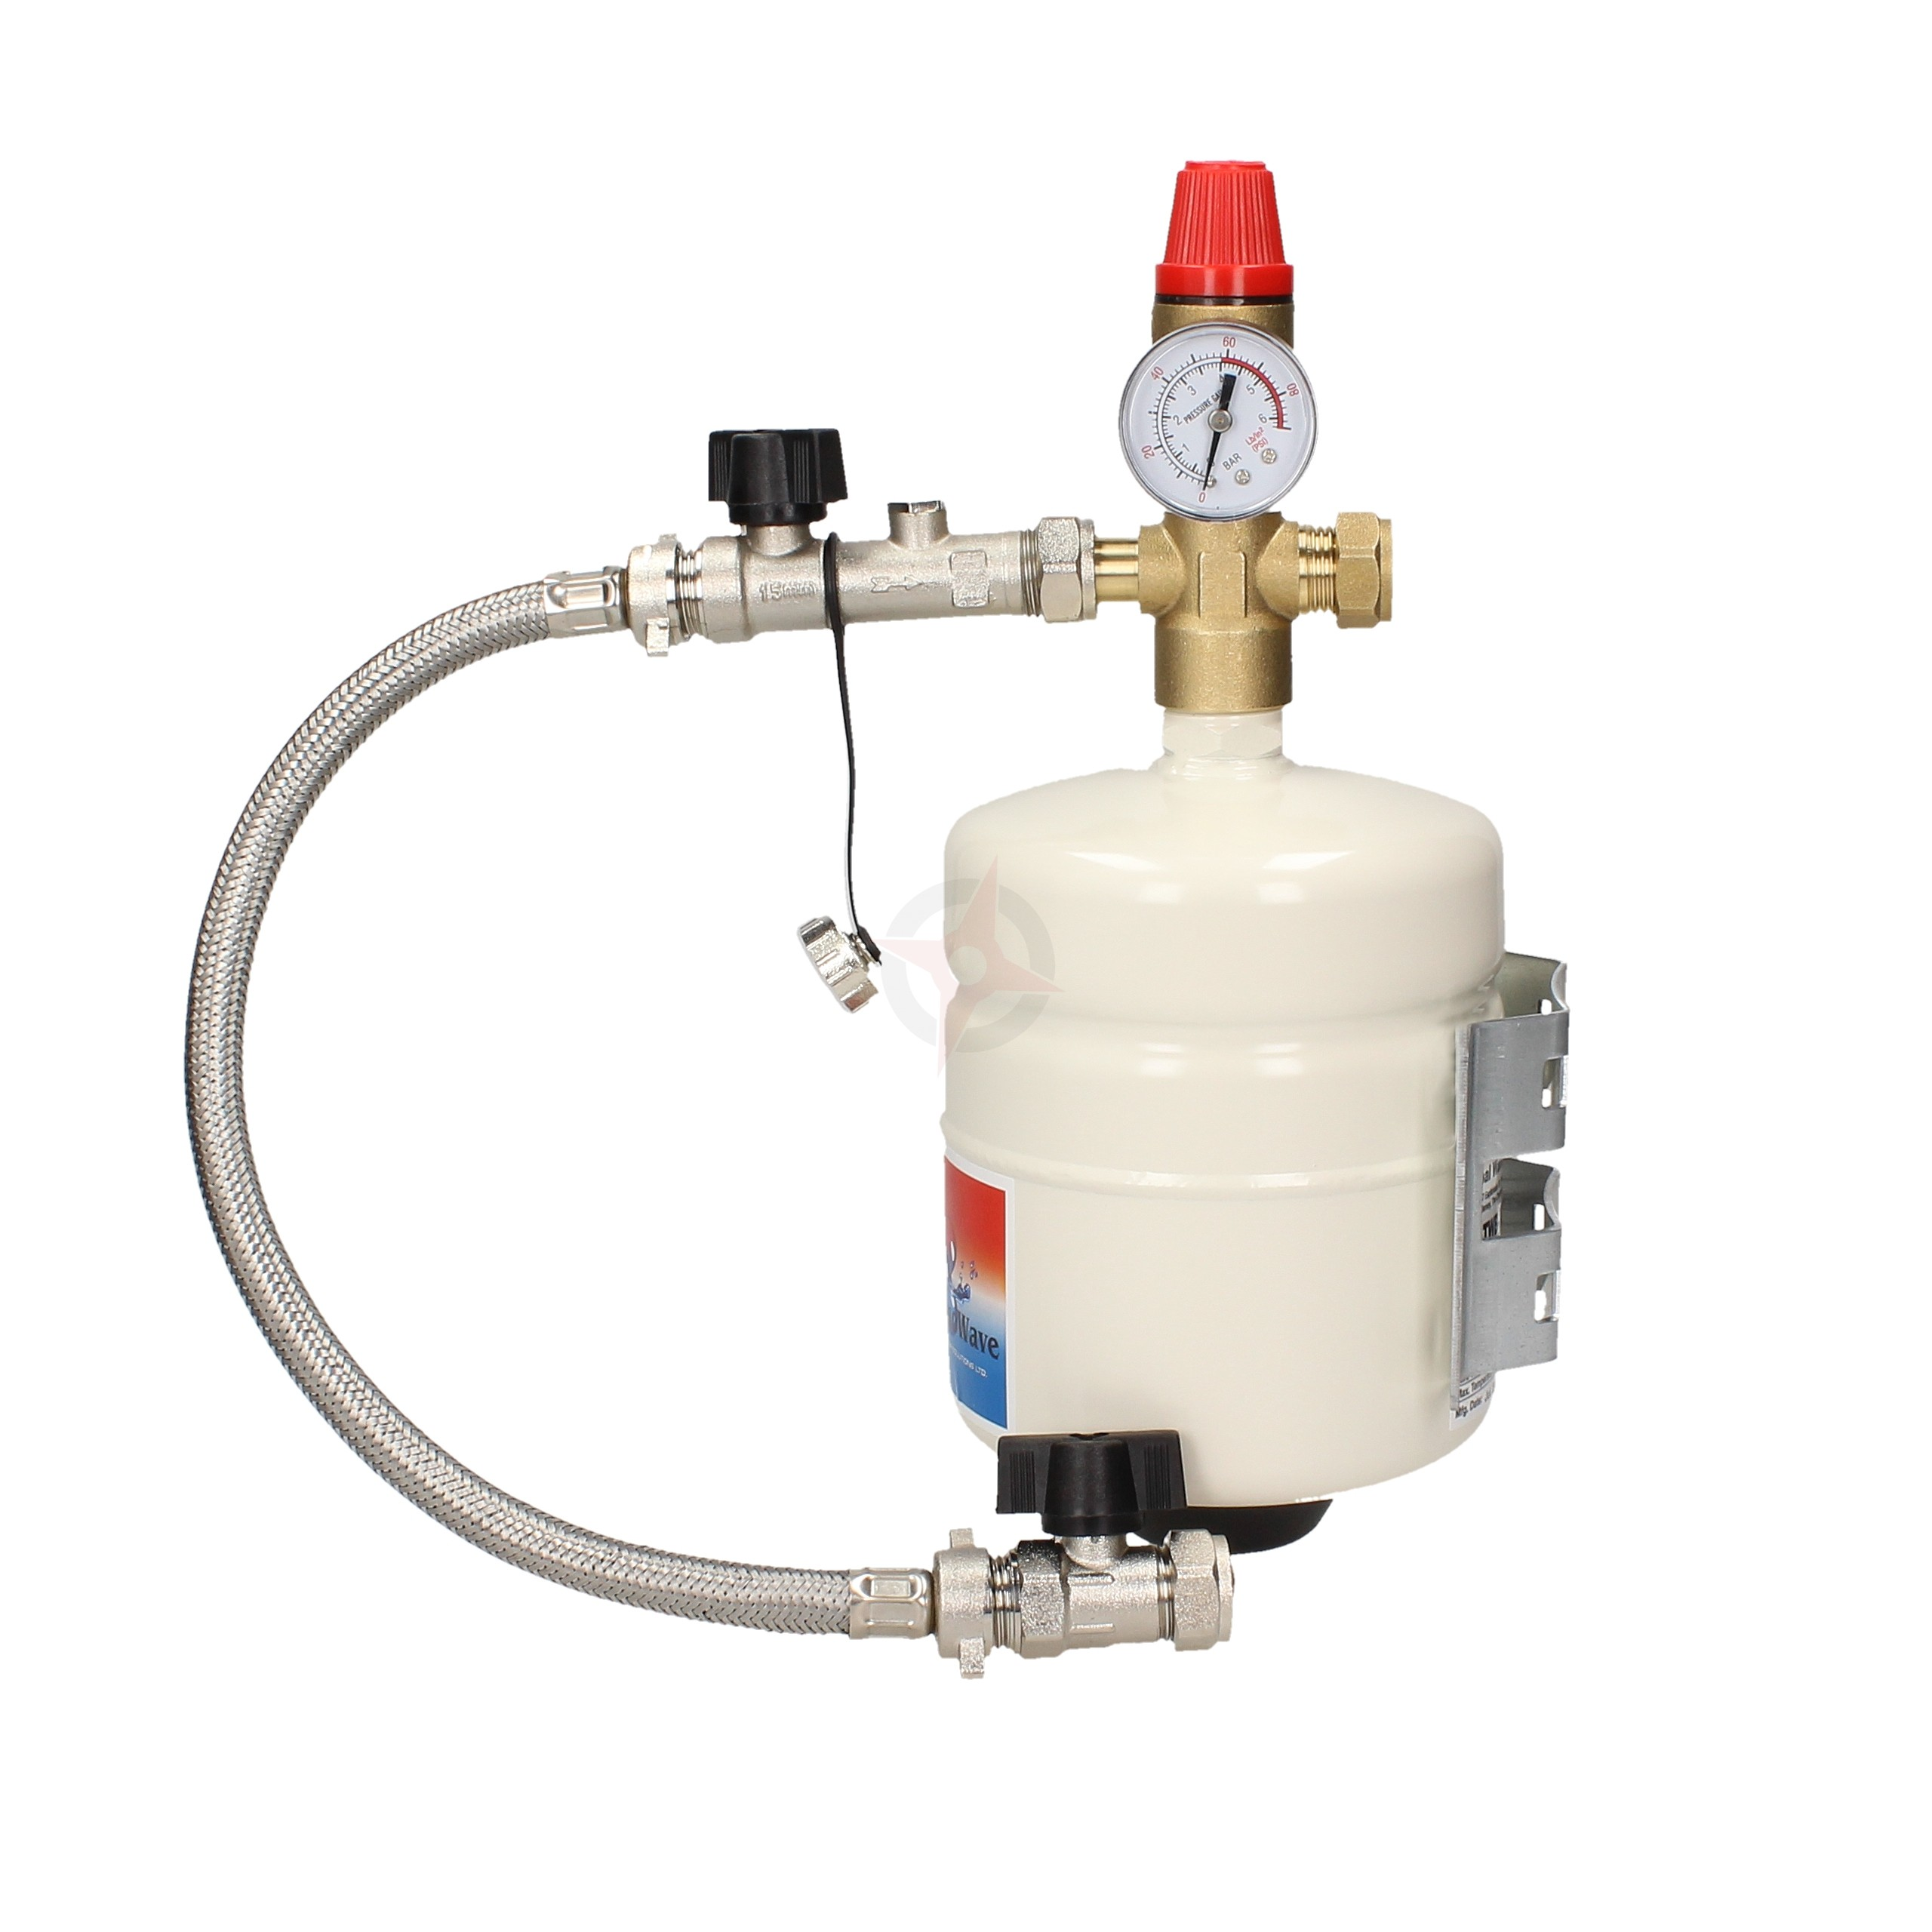 "ThermoWave 2L Multifunction Expansion Vessel (1/2"") c/w Fixing Bracket & Sealed System Kit"